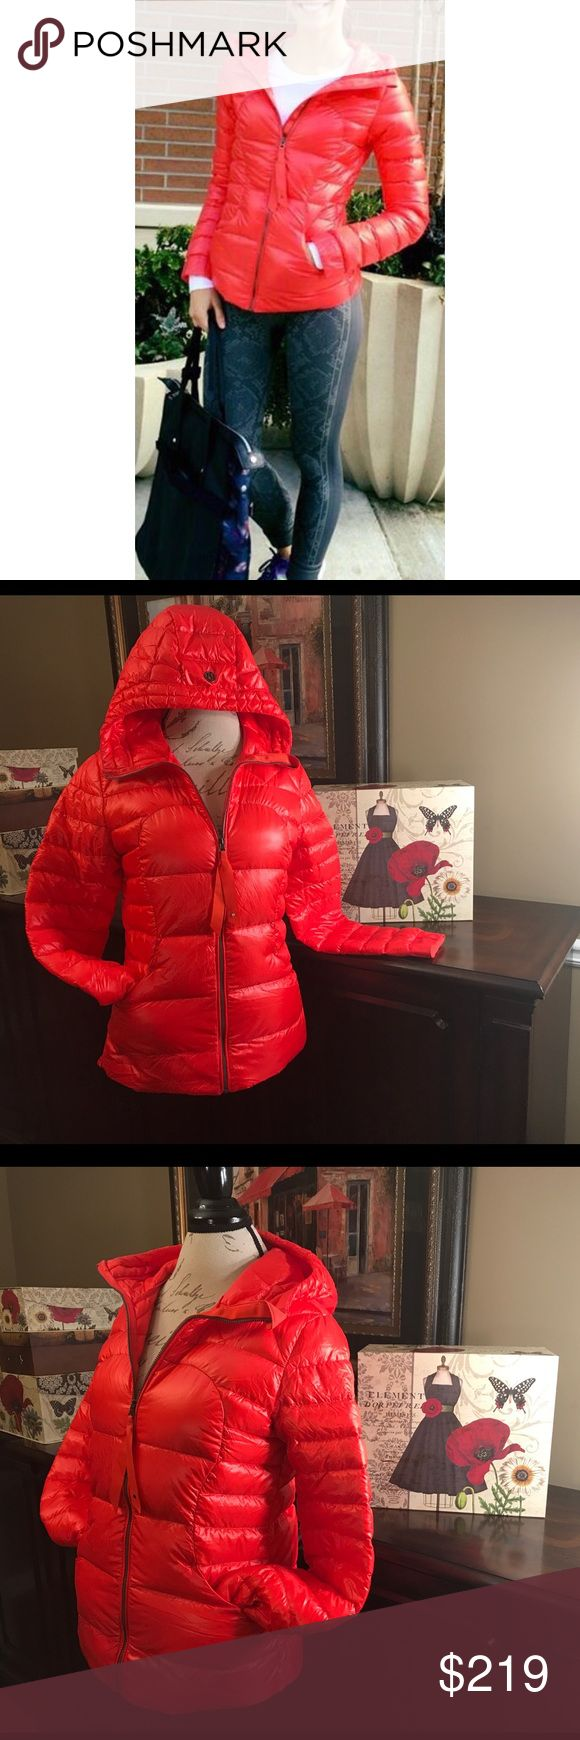 Lululemon Fluffin Awesome Jacket-Alarming, Size 8 Lululemon Fluffin Awesome Puffer Jacket-Alarming, Size 8  I do not trade.  It's fluffy. It's vibrant red. It's awesome. 😁 What more do you need? This rare Lulu find would be great worn casually with jeans or with shorts/leggings for your workout. Release date, September 2015. Except for a small faint 1/4 inch round spot on one sleeve, this is in great condition! ☺   Length-25 inches in front, 26 inches in back  Bust-38 inches (19 inches…